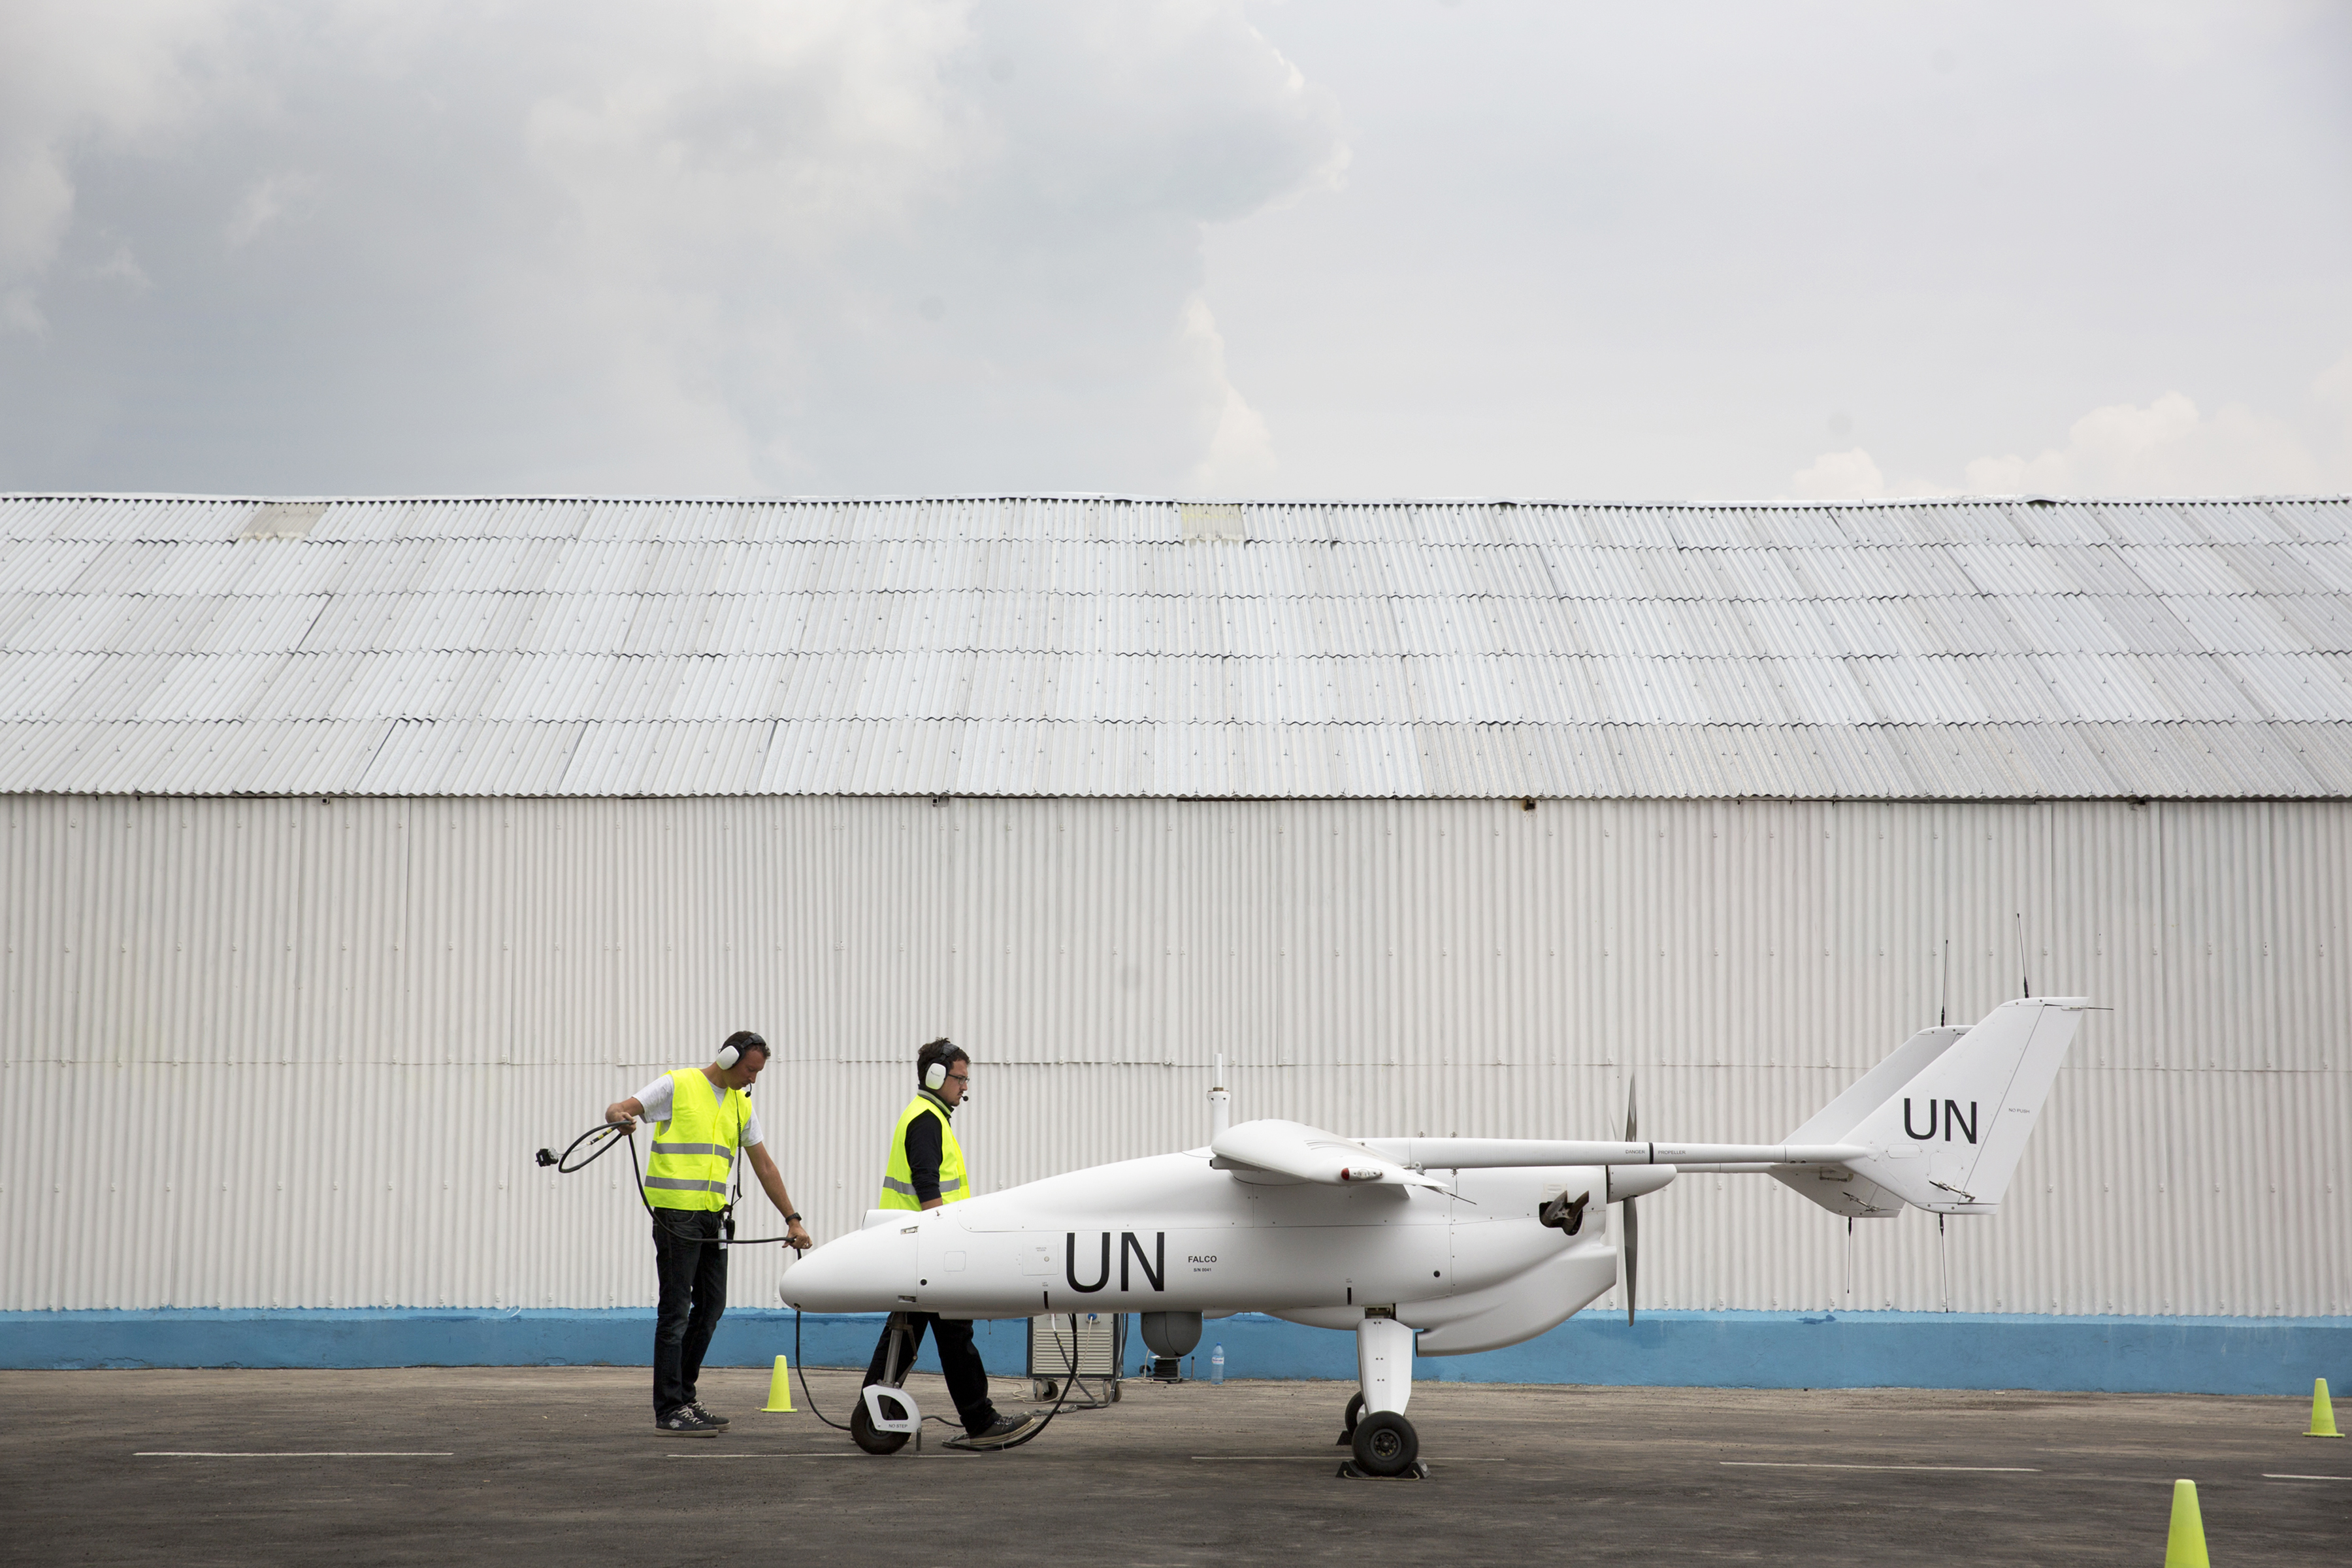 Security Policy Armed Forces Media Page 49 Ascert C15 Engine Diagram A Technician Team Prepare The Launch Of Un Drone Is Goma Democratic Republic Congo Sylvain Liechti Photo